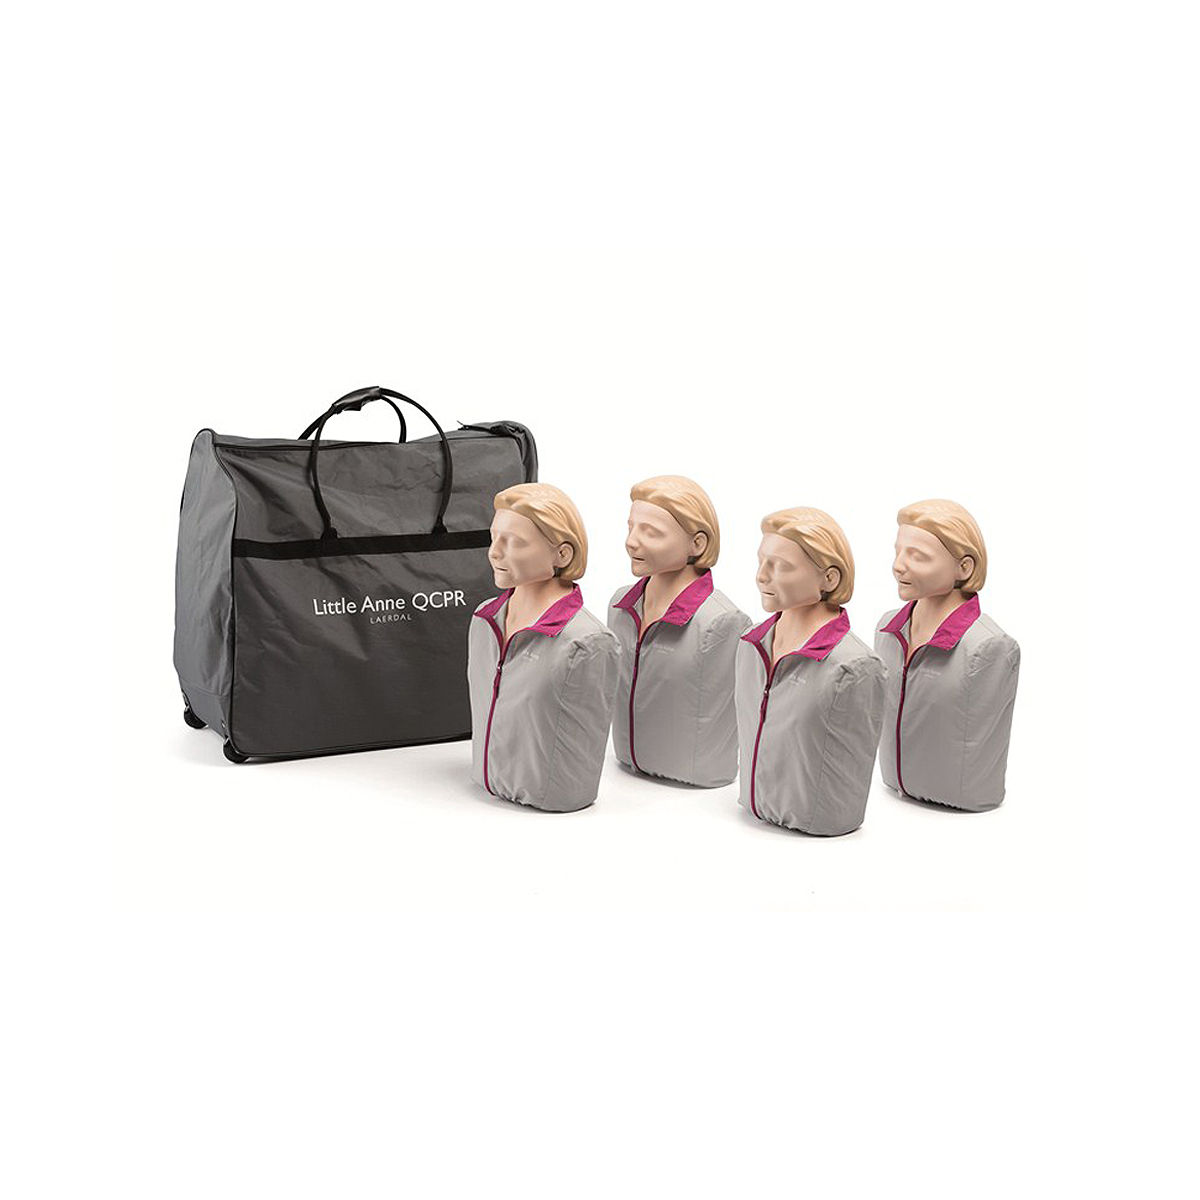 Pack of 4 Light Skin Laerdal Little Anne™ QCPR Training Manikin